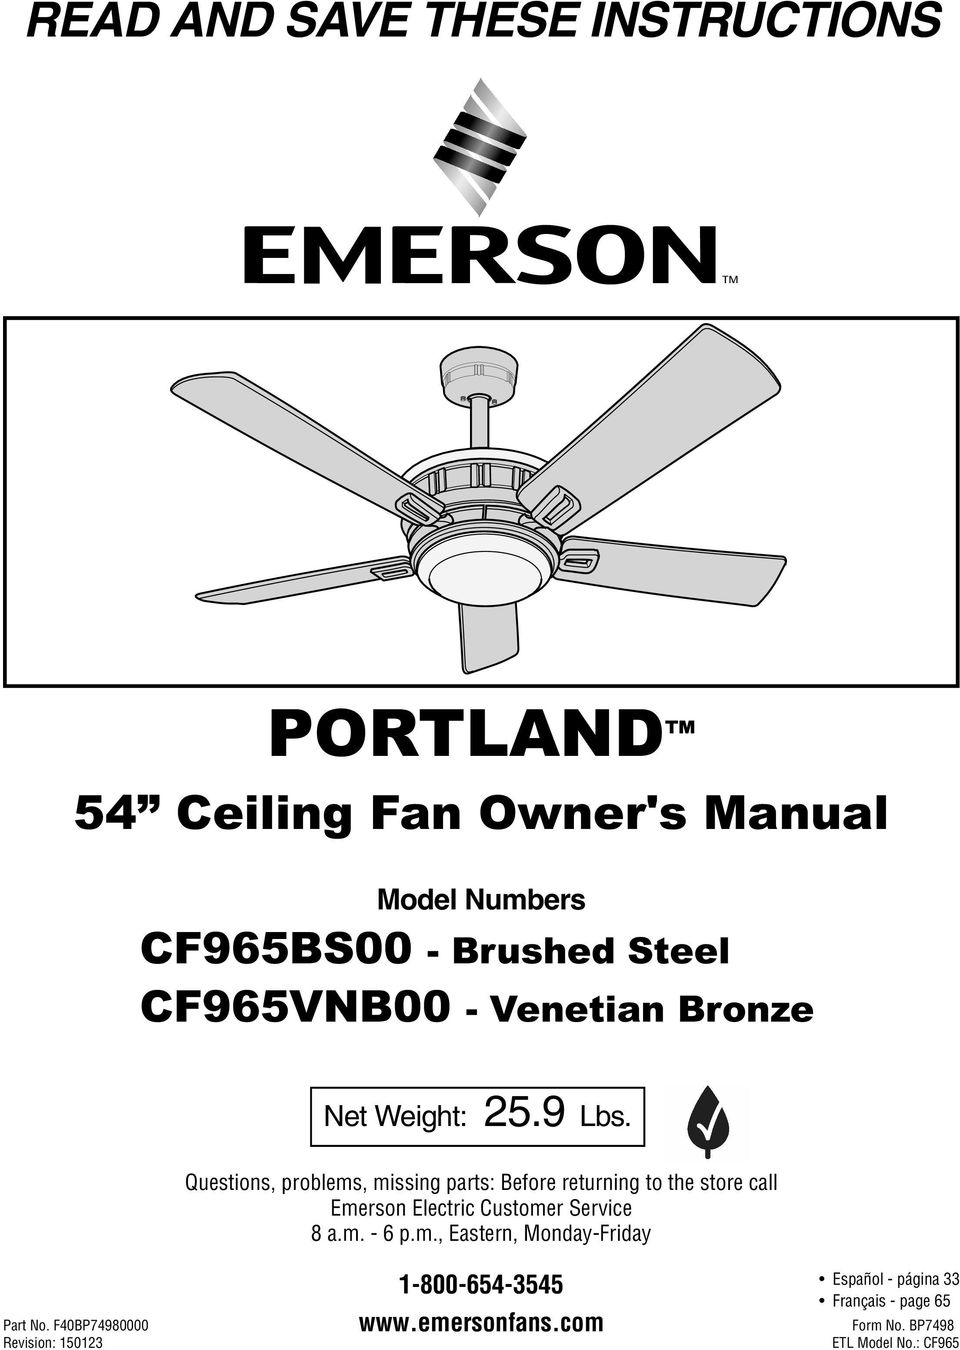 Questions, problems, missing parts: Before returning to the store call Emerson Electric Customer Service 8 a.